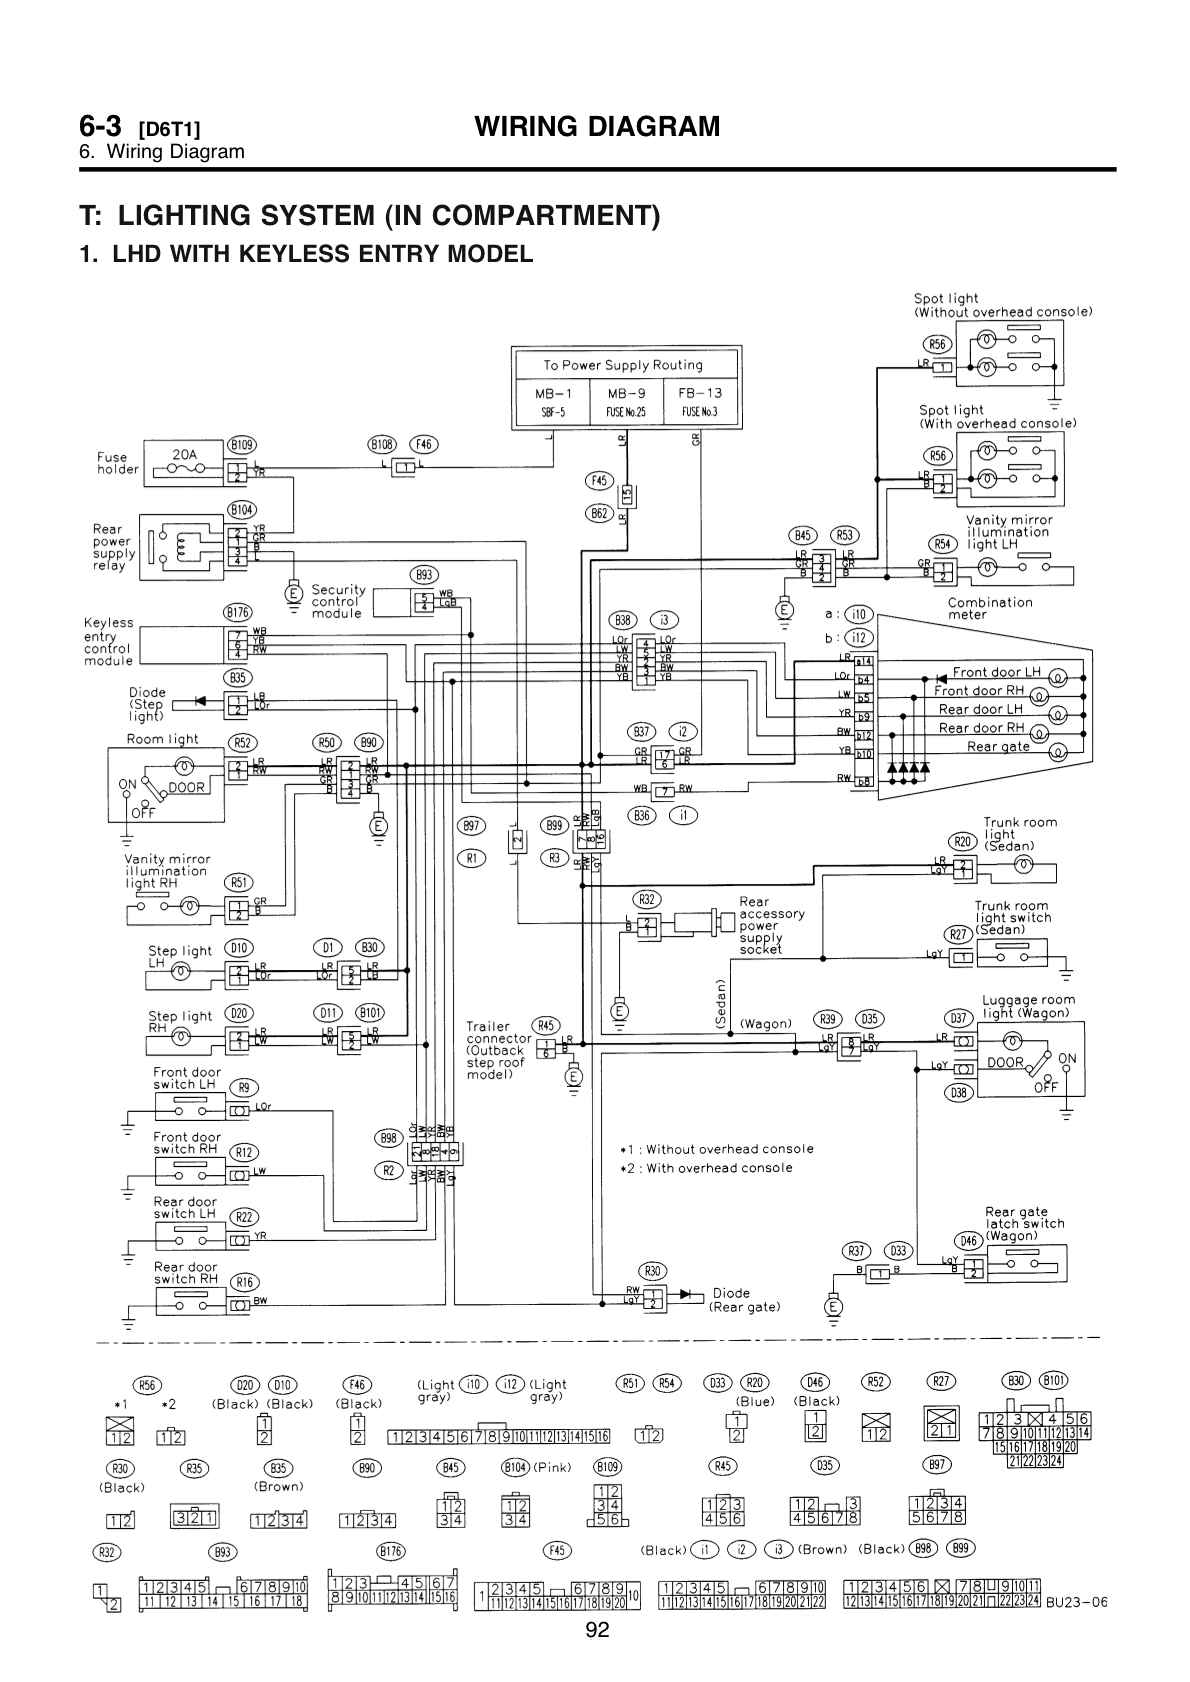 wiring_diagram1 subaru wiring diagrams 1992 subaru legacy heater wiring schematic 1998 Subaru Legacy Wiring-Diagram at aneh.co